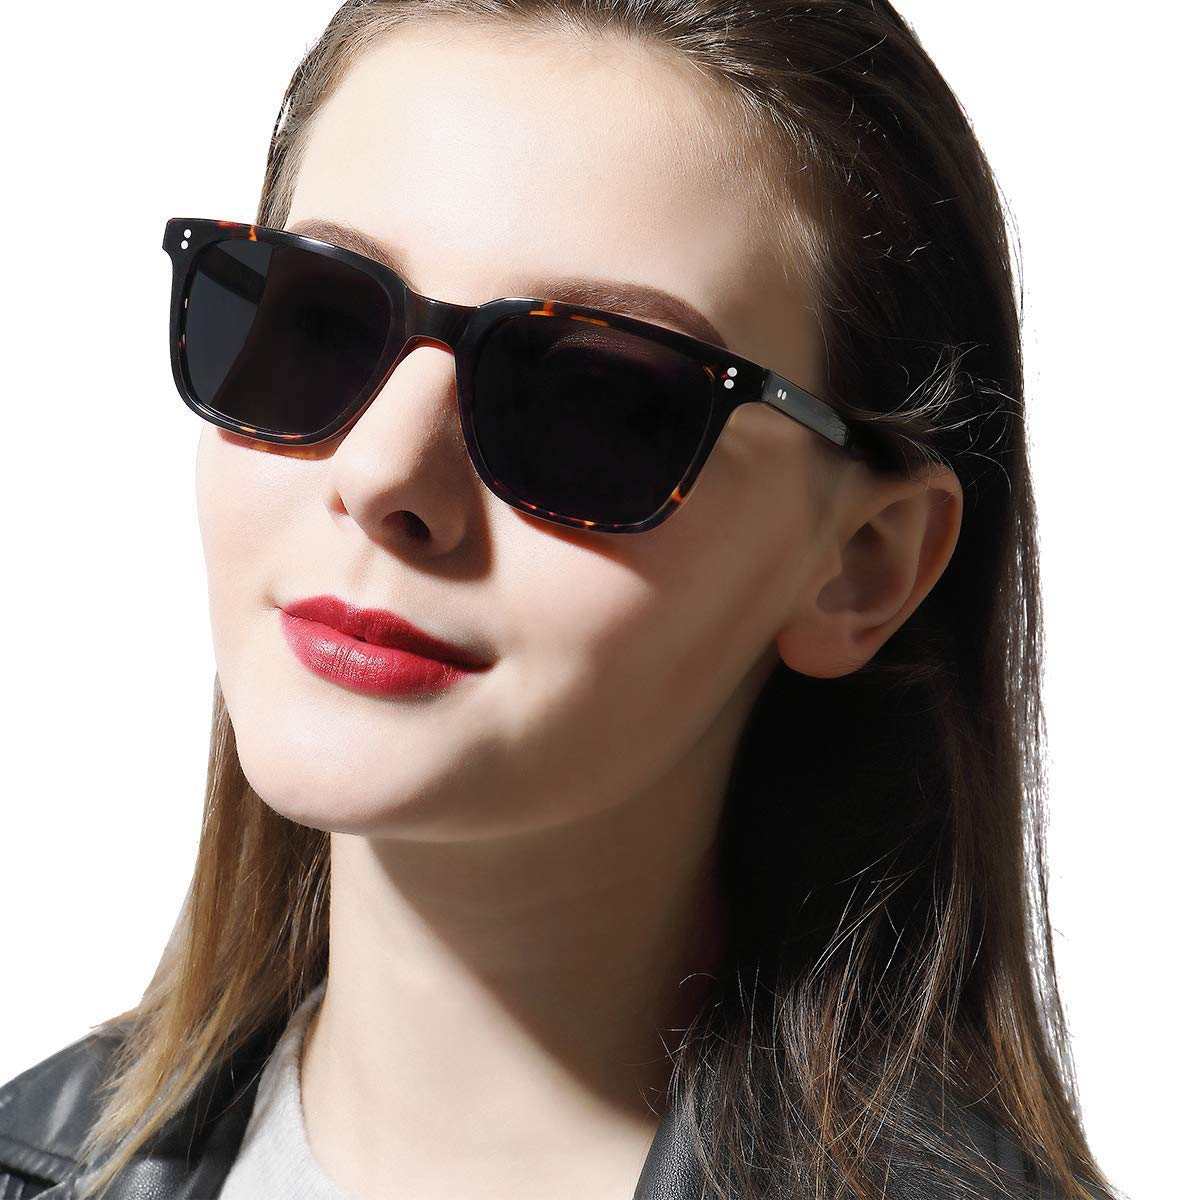 Carfia Chic Retro Polarized Womens Sunglasses UV400 Protection